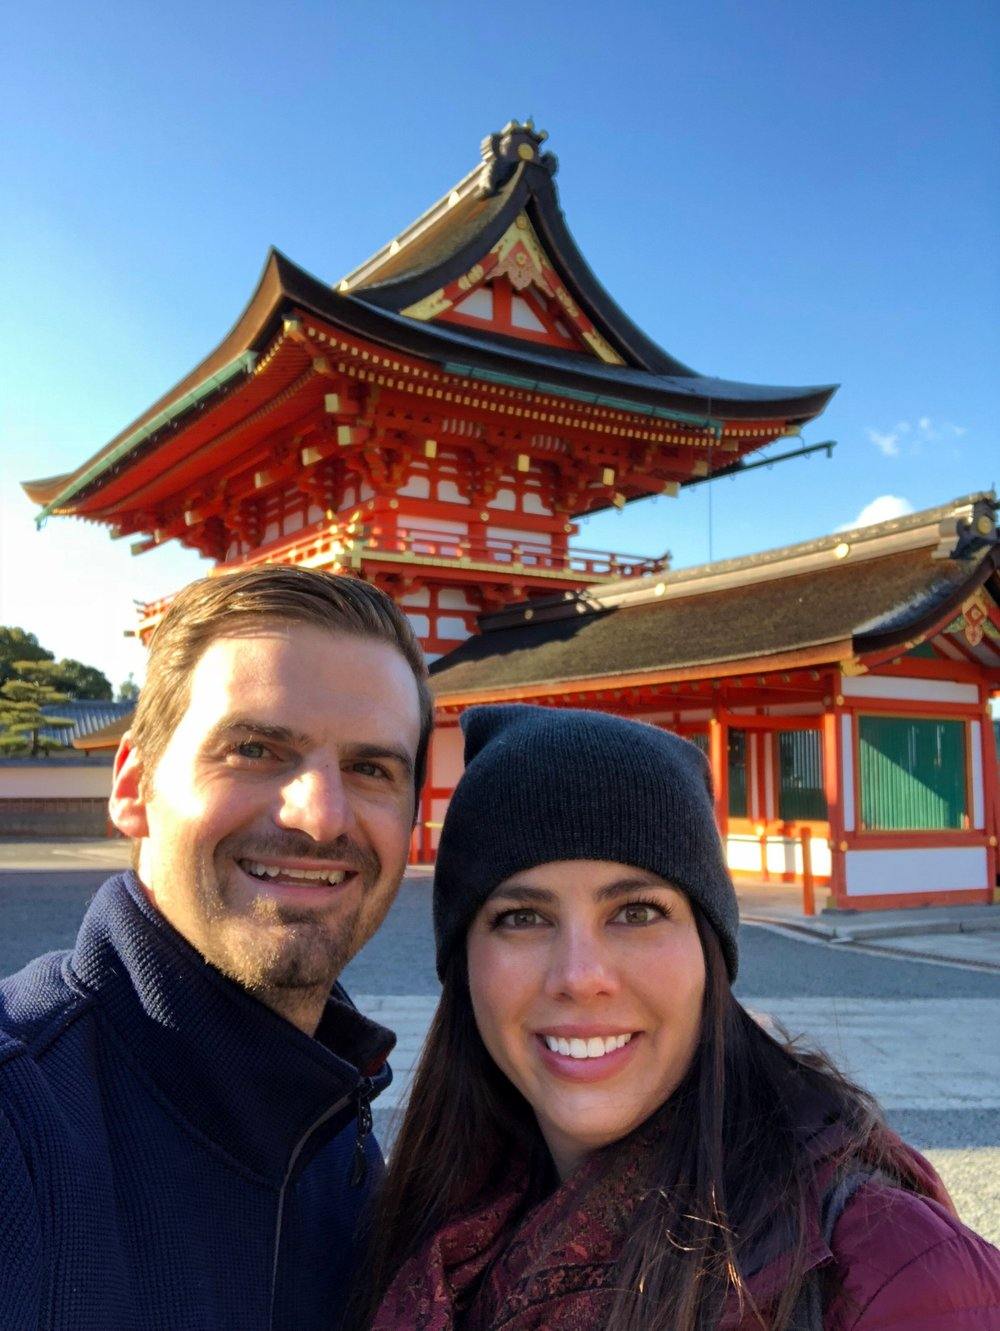 Matt and Kelly start out their early morning at the entrance to the Fushimi Inari-Taisha Shrine in Kyoto, Japan.